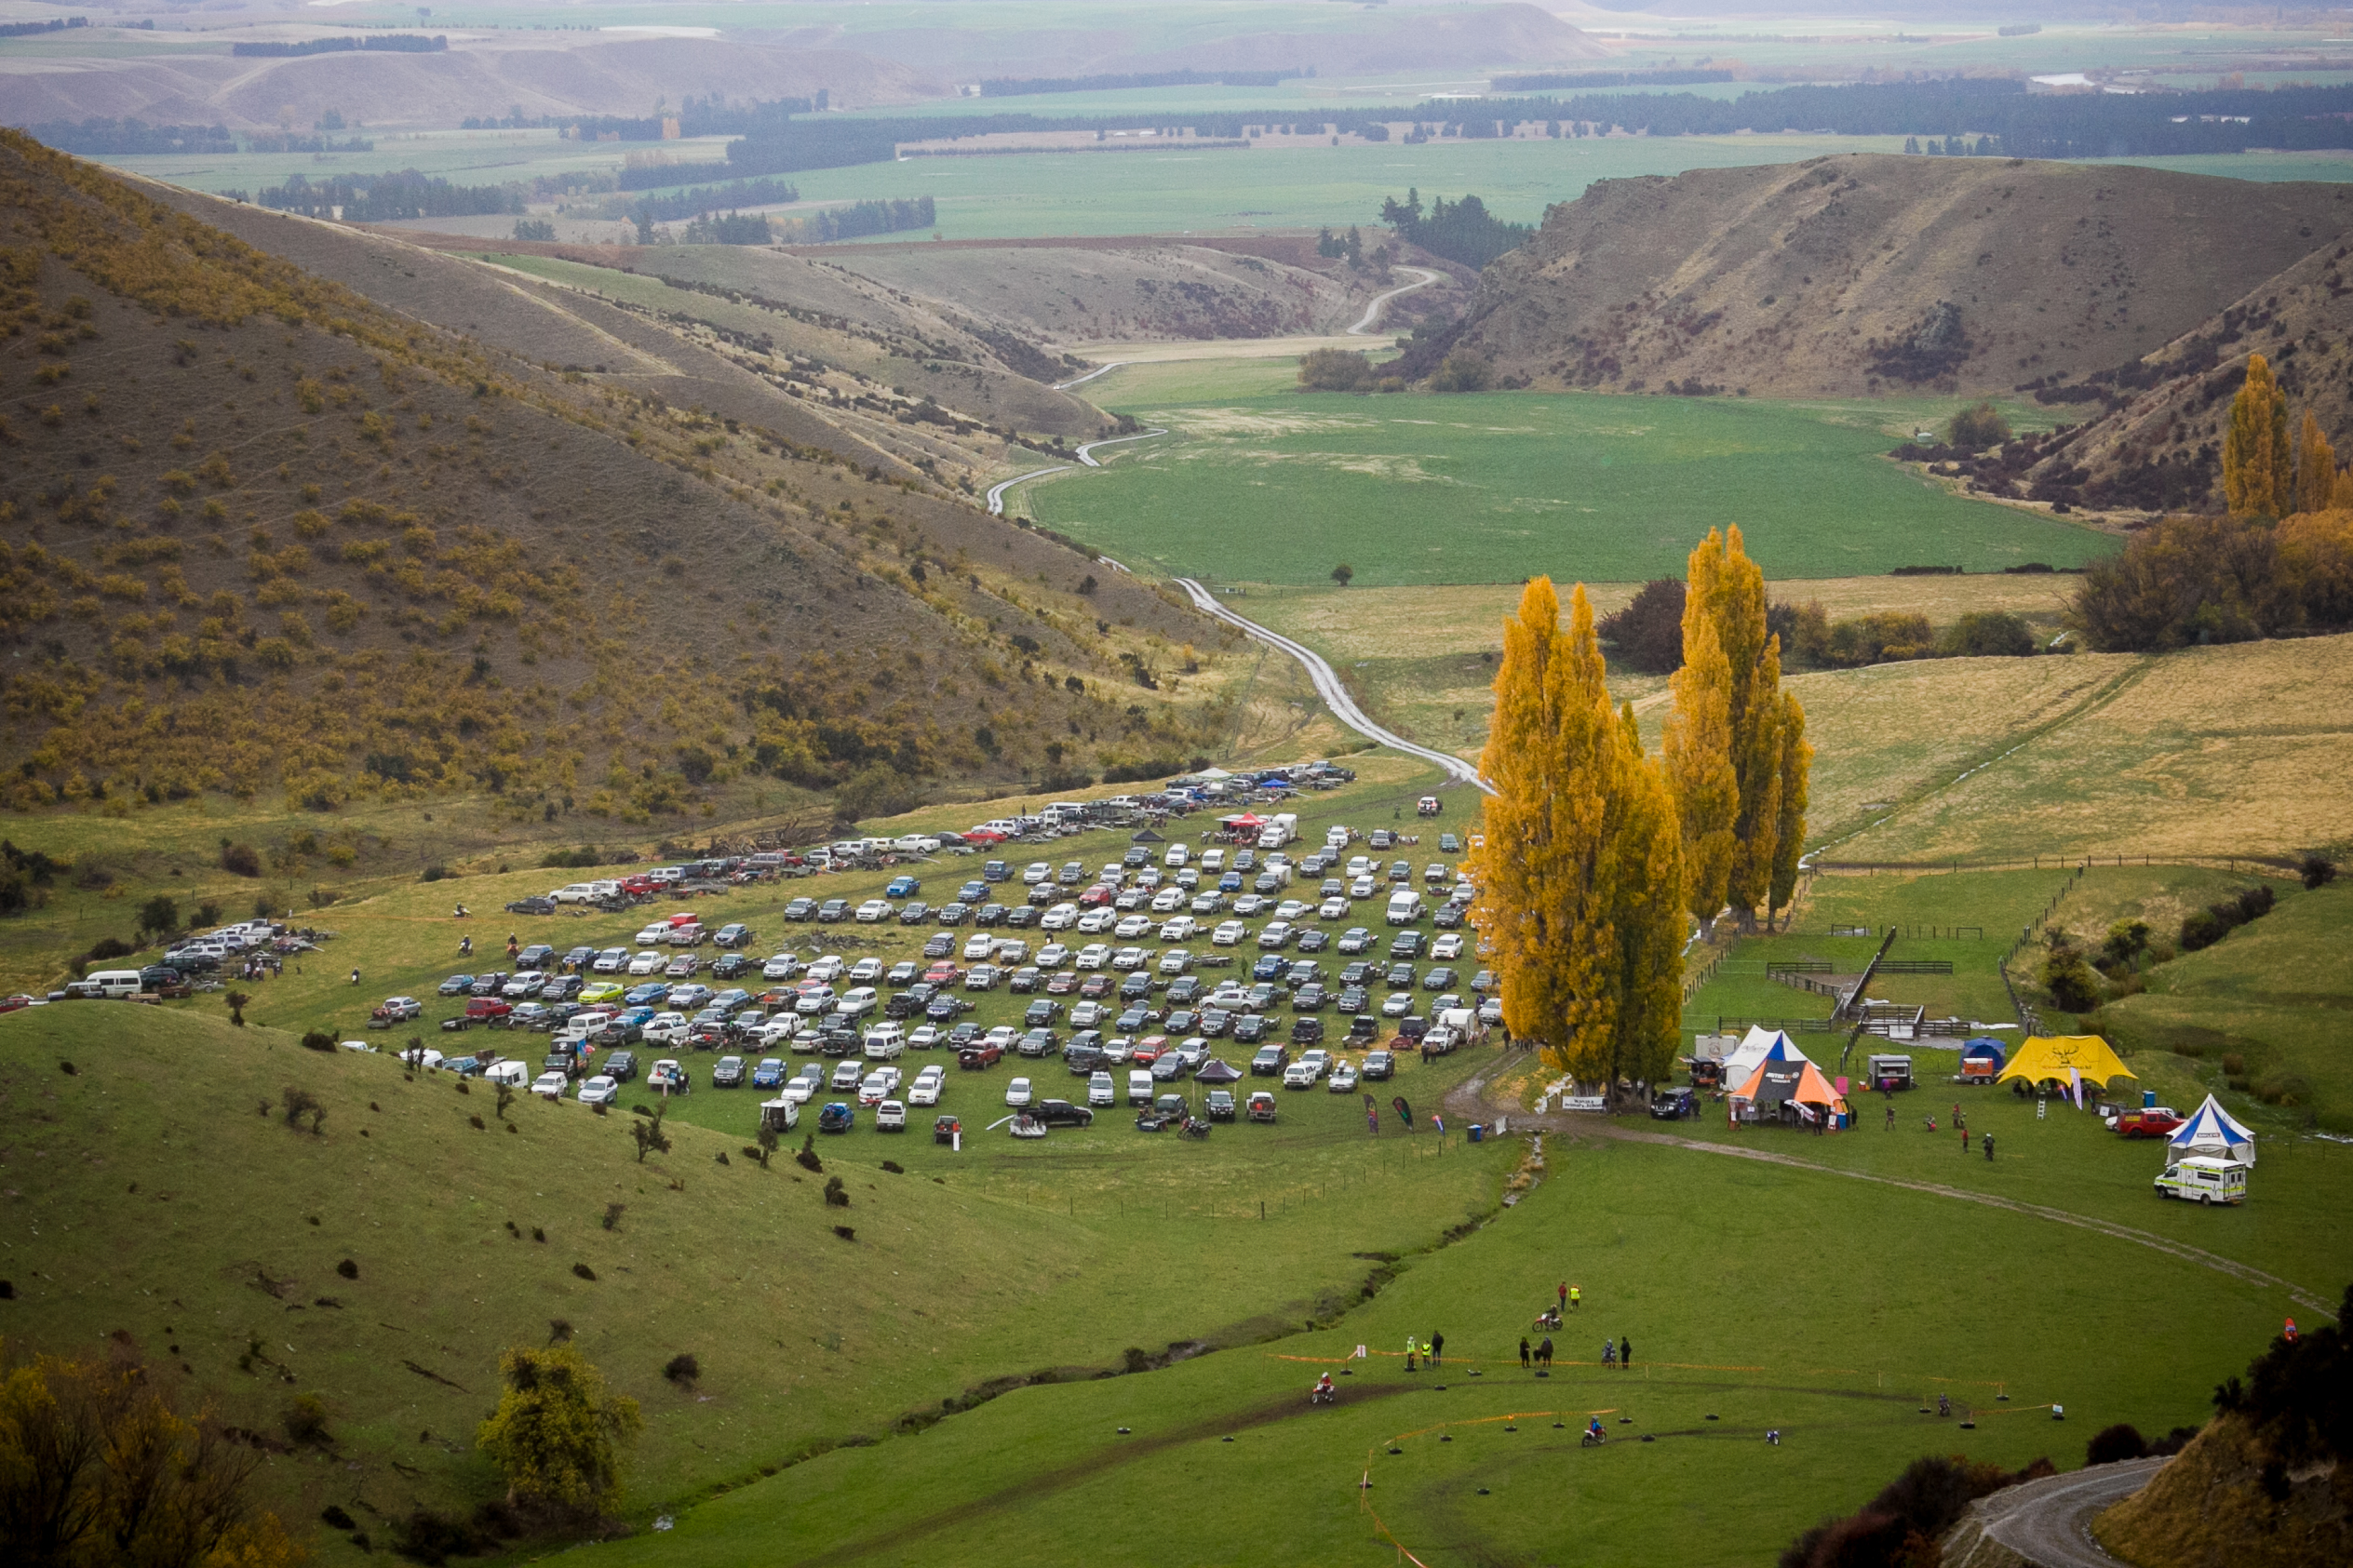 Wanaka Trail Ride confirmed for Sunday 24th April